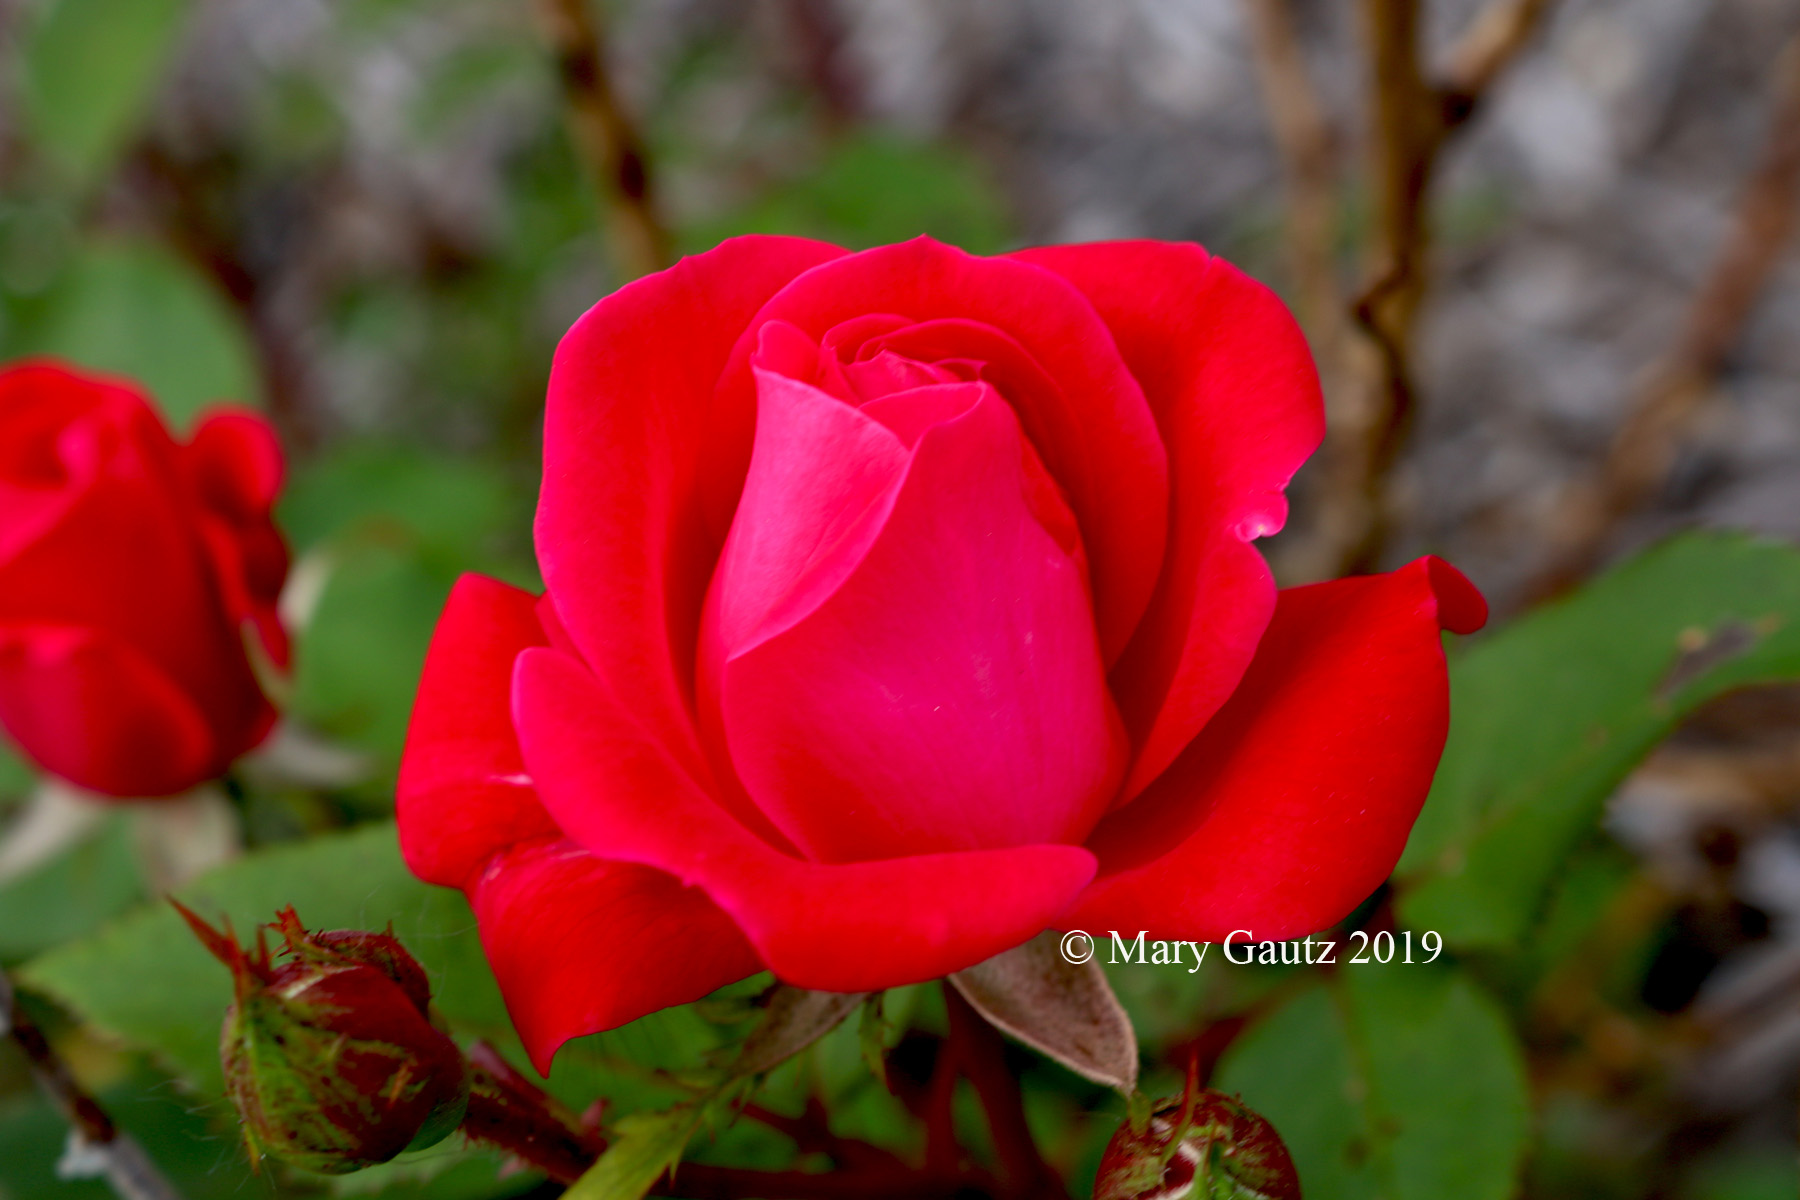 Red Rose copywrited copy.jpg